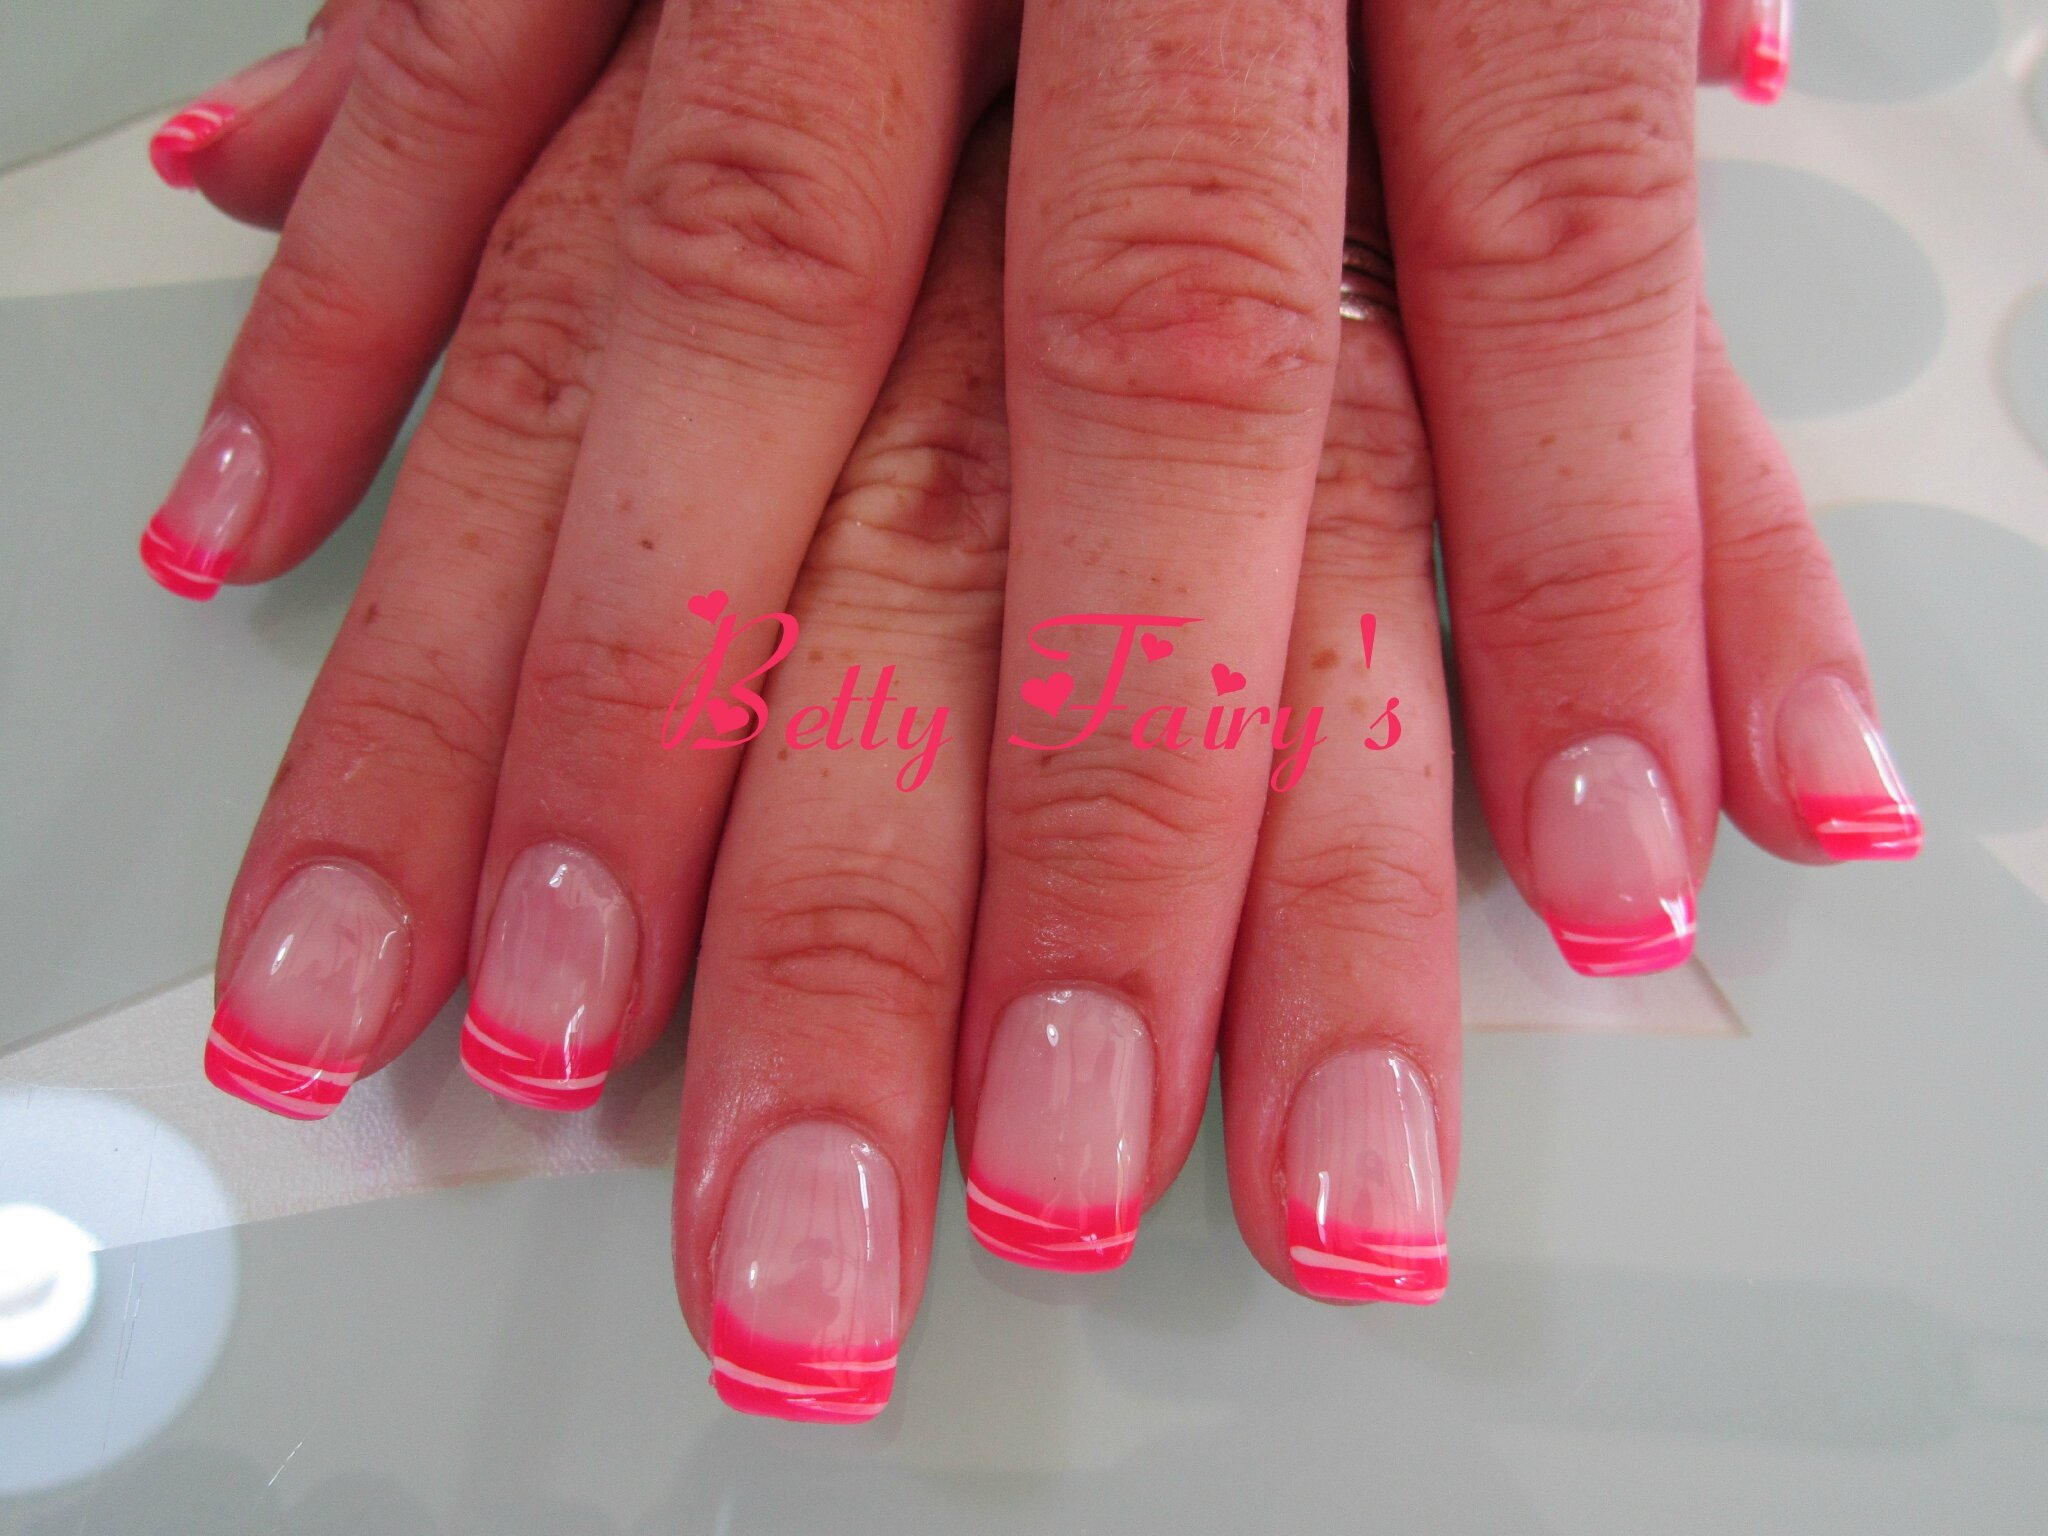 Ongles french rose fluo - Ongle rose fluo ...